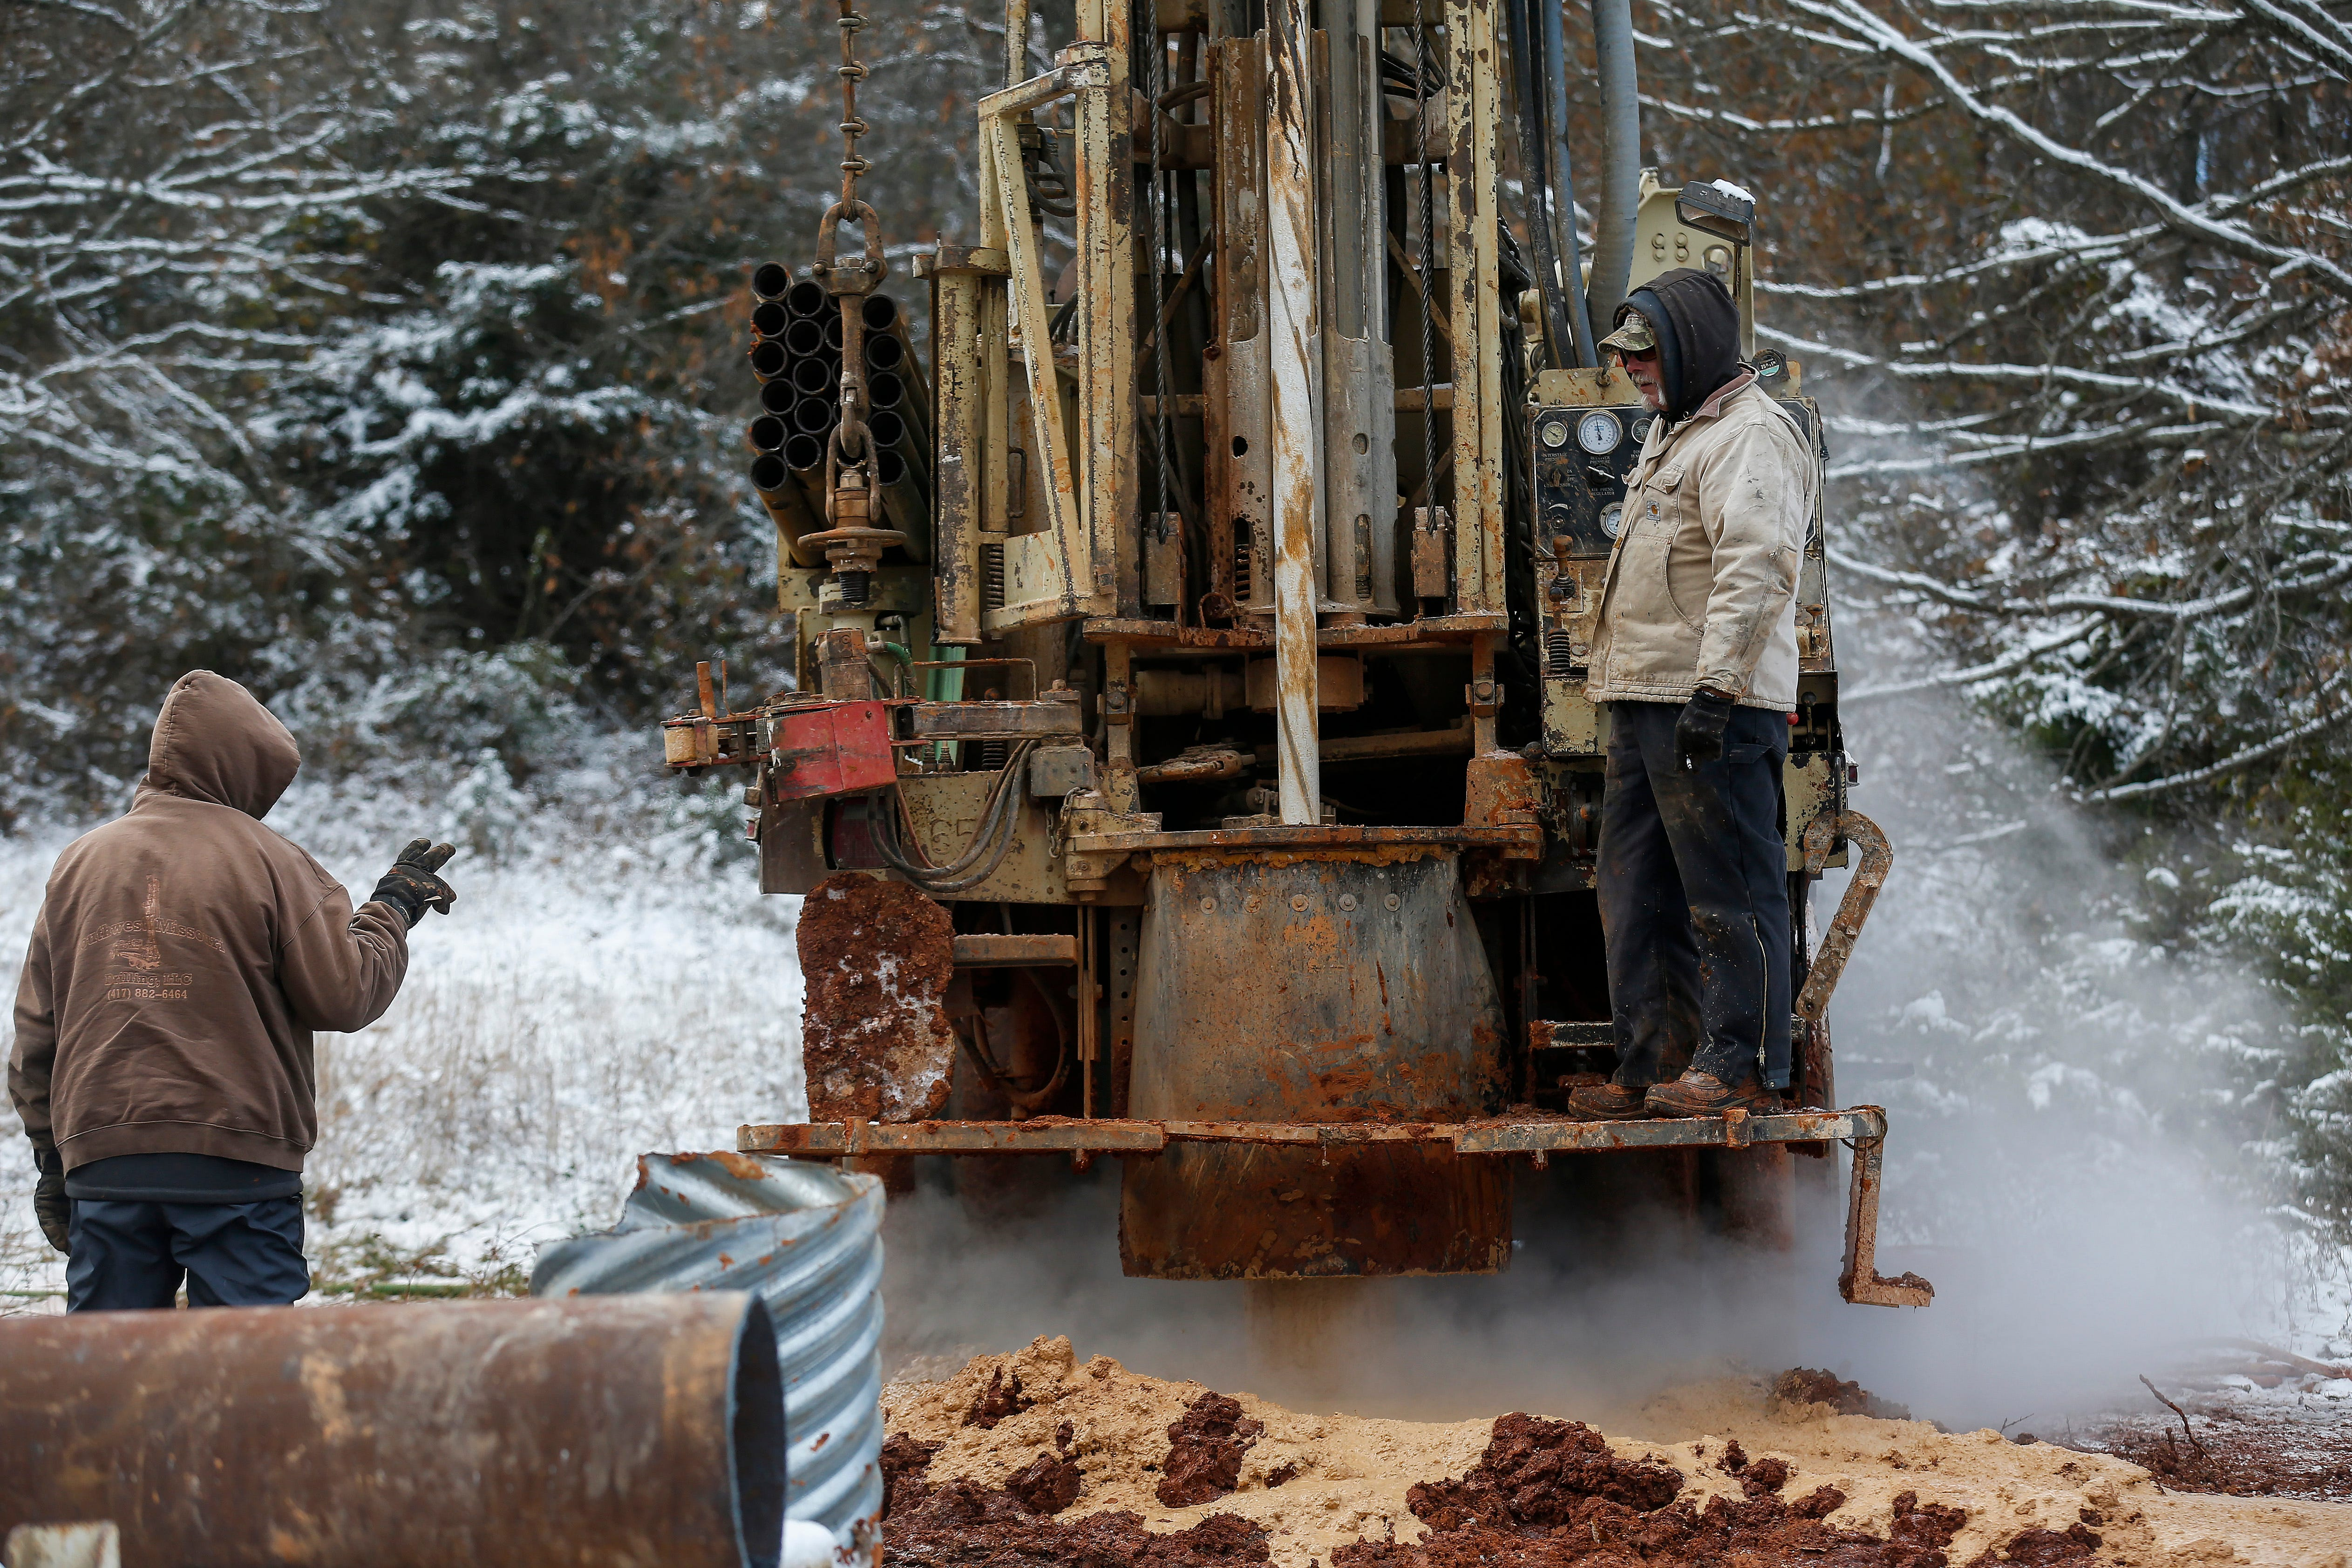 In November, workers from Southwest Missouri Well Drilling Inc. drilled several holes to vent  trichloroethylene (TCE) vapors near Fantastic Caverns.